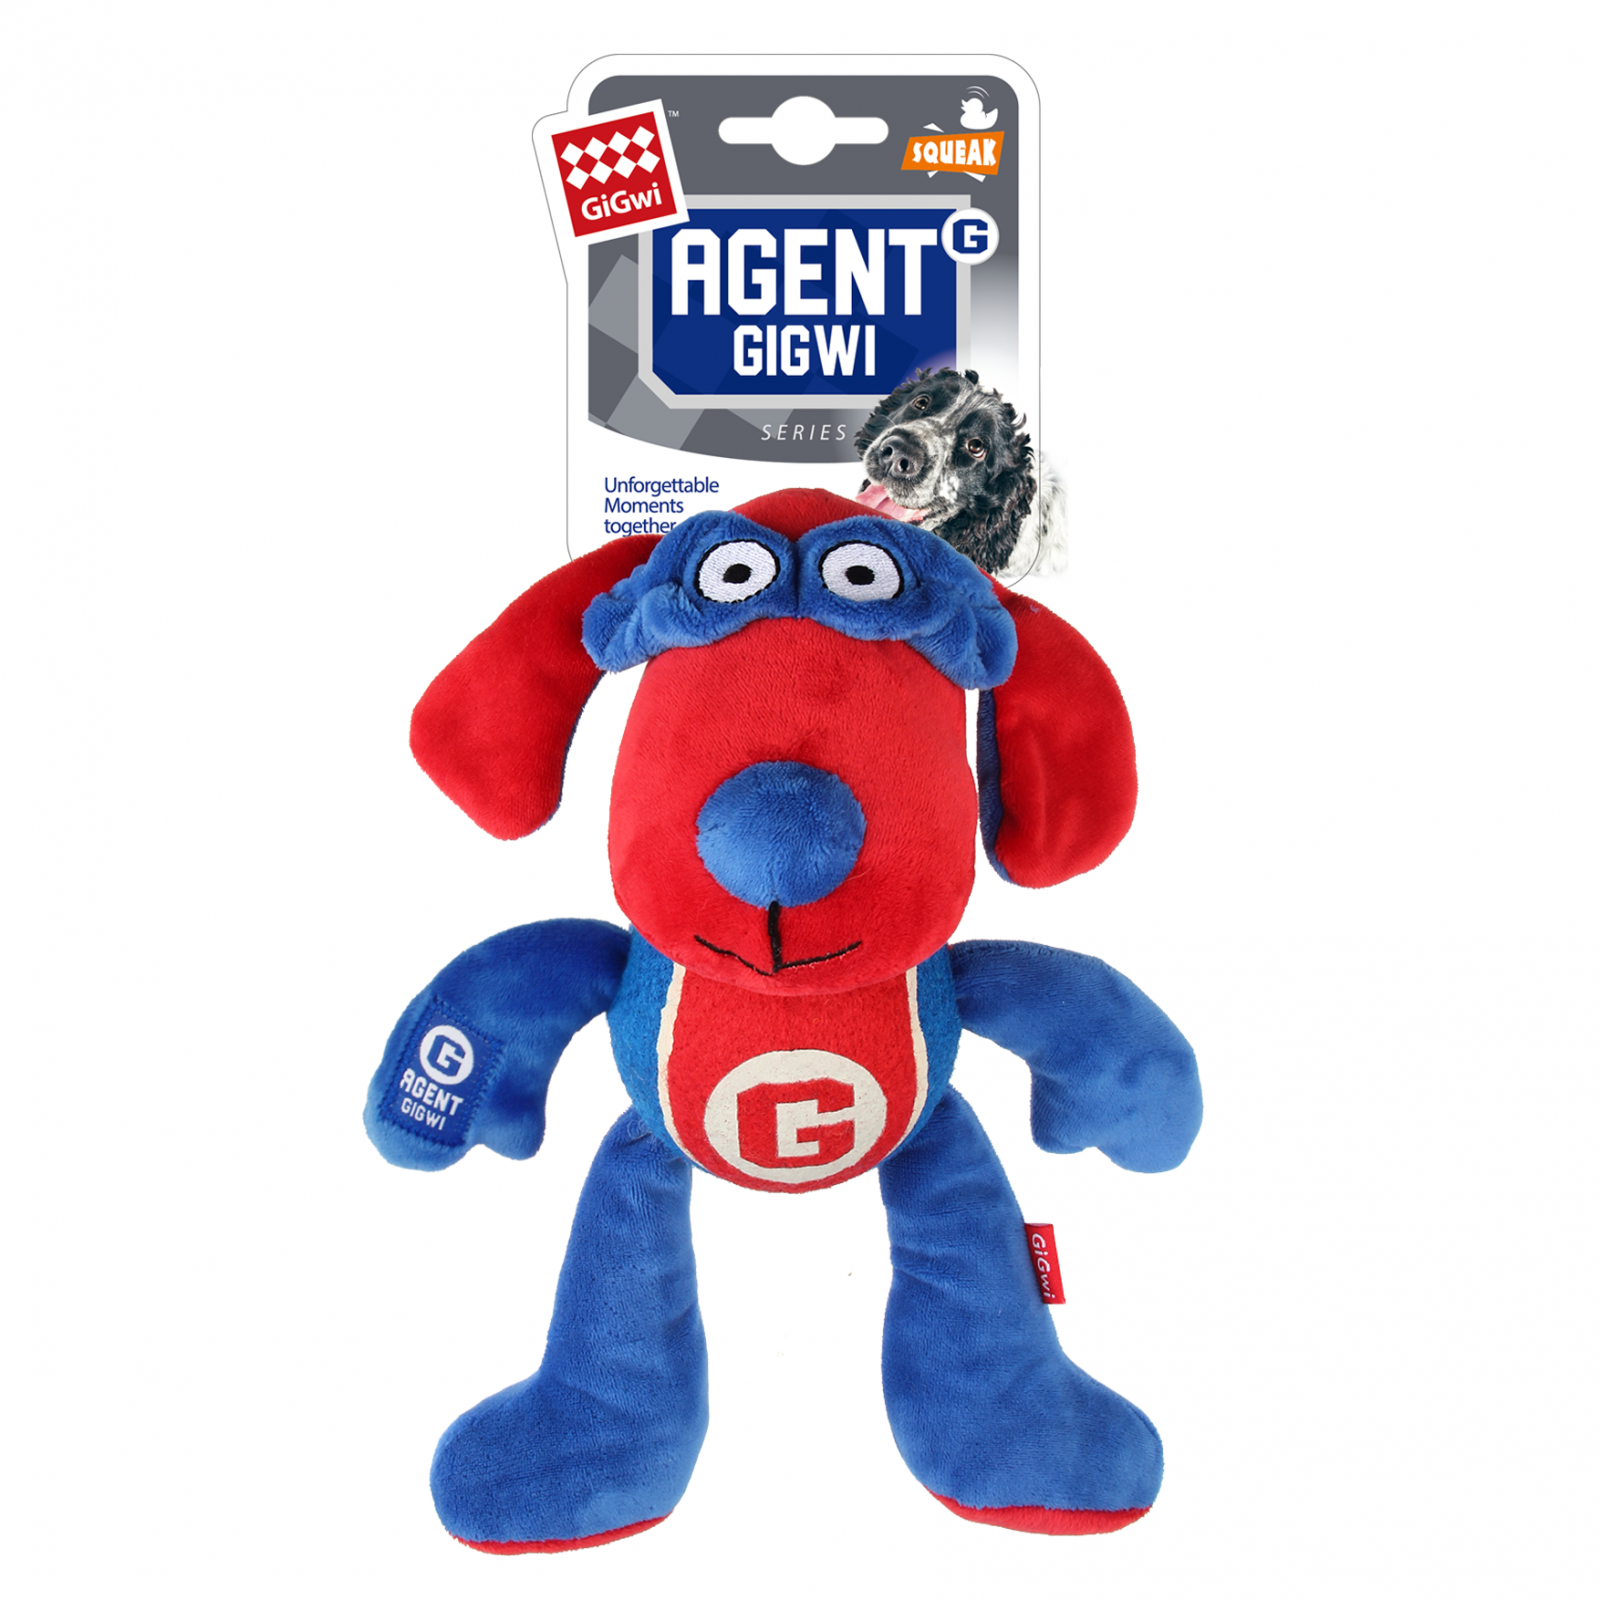 GIGWI Gigwi Agent Gigwi Dog Plush And Tennis Ball With Squeaker